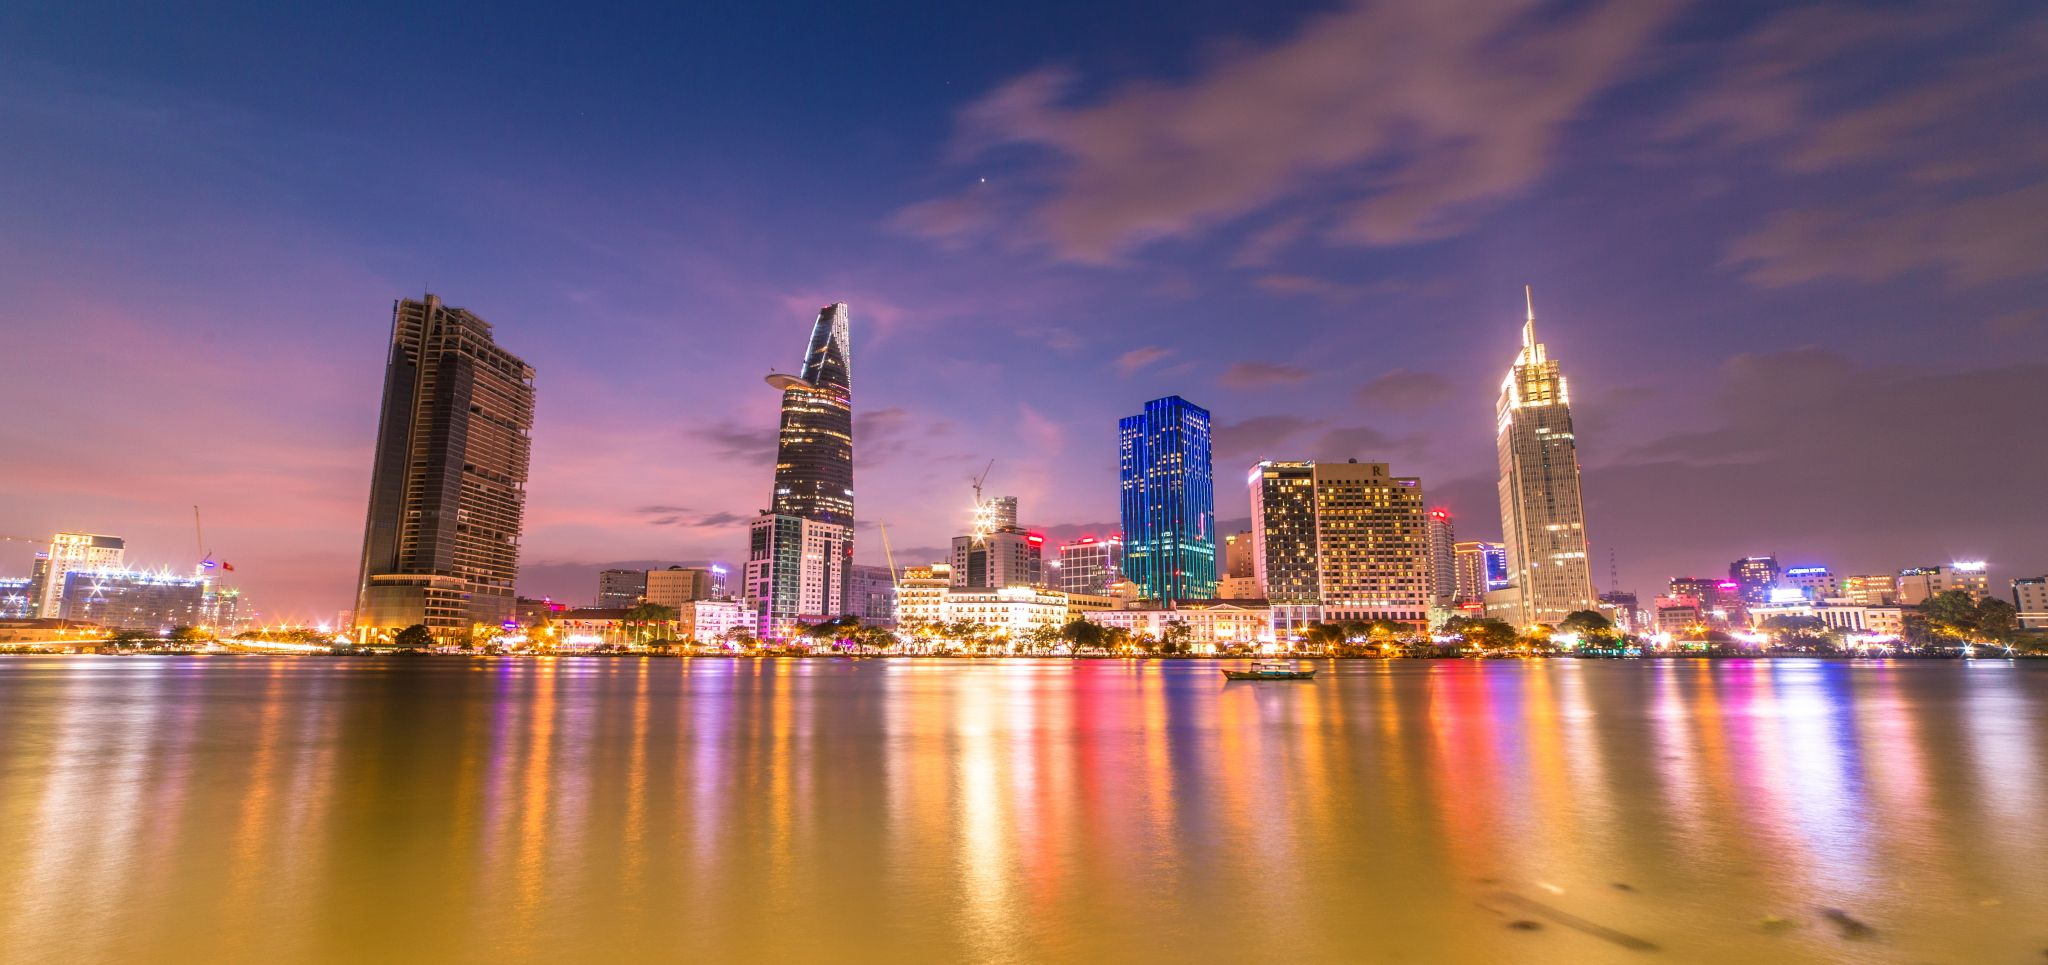 skyline-of-saigon-vietnam_l